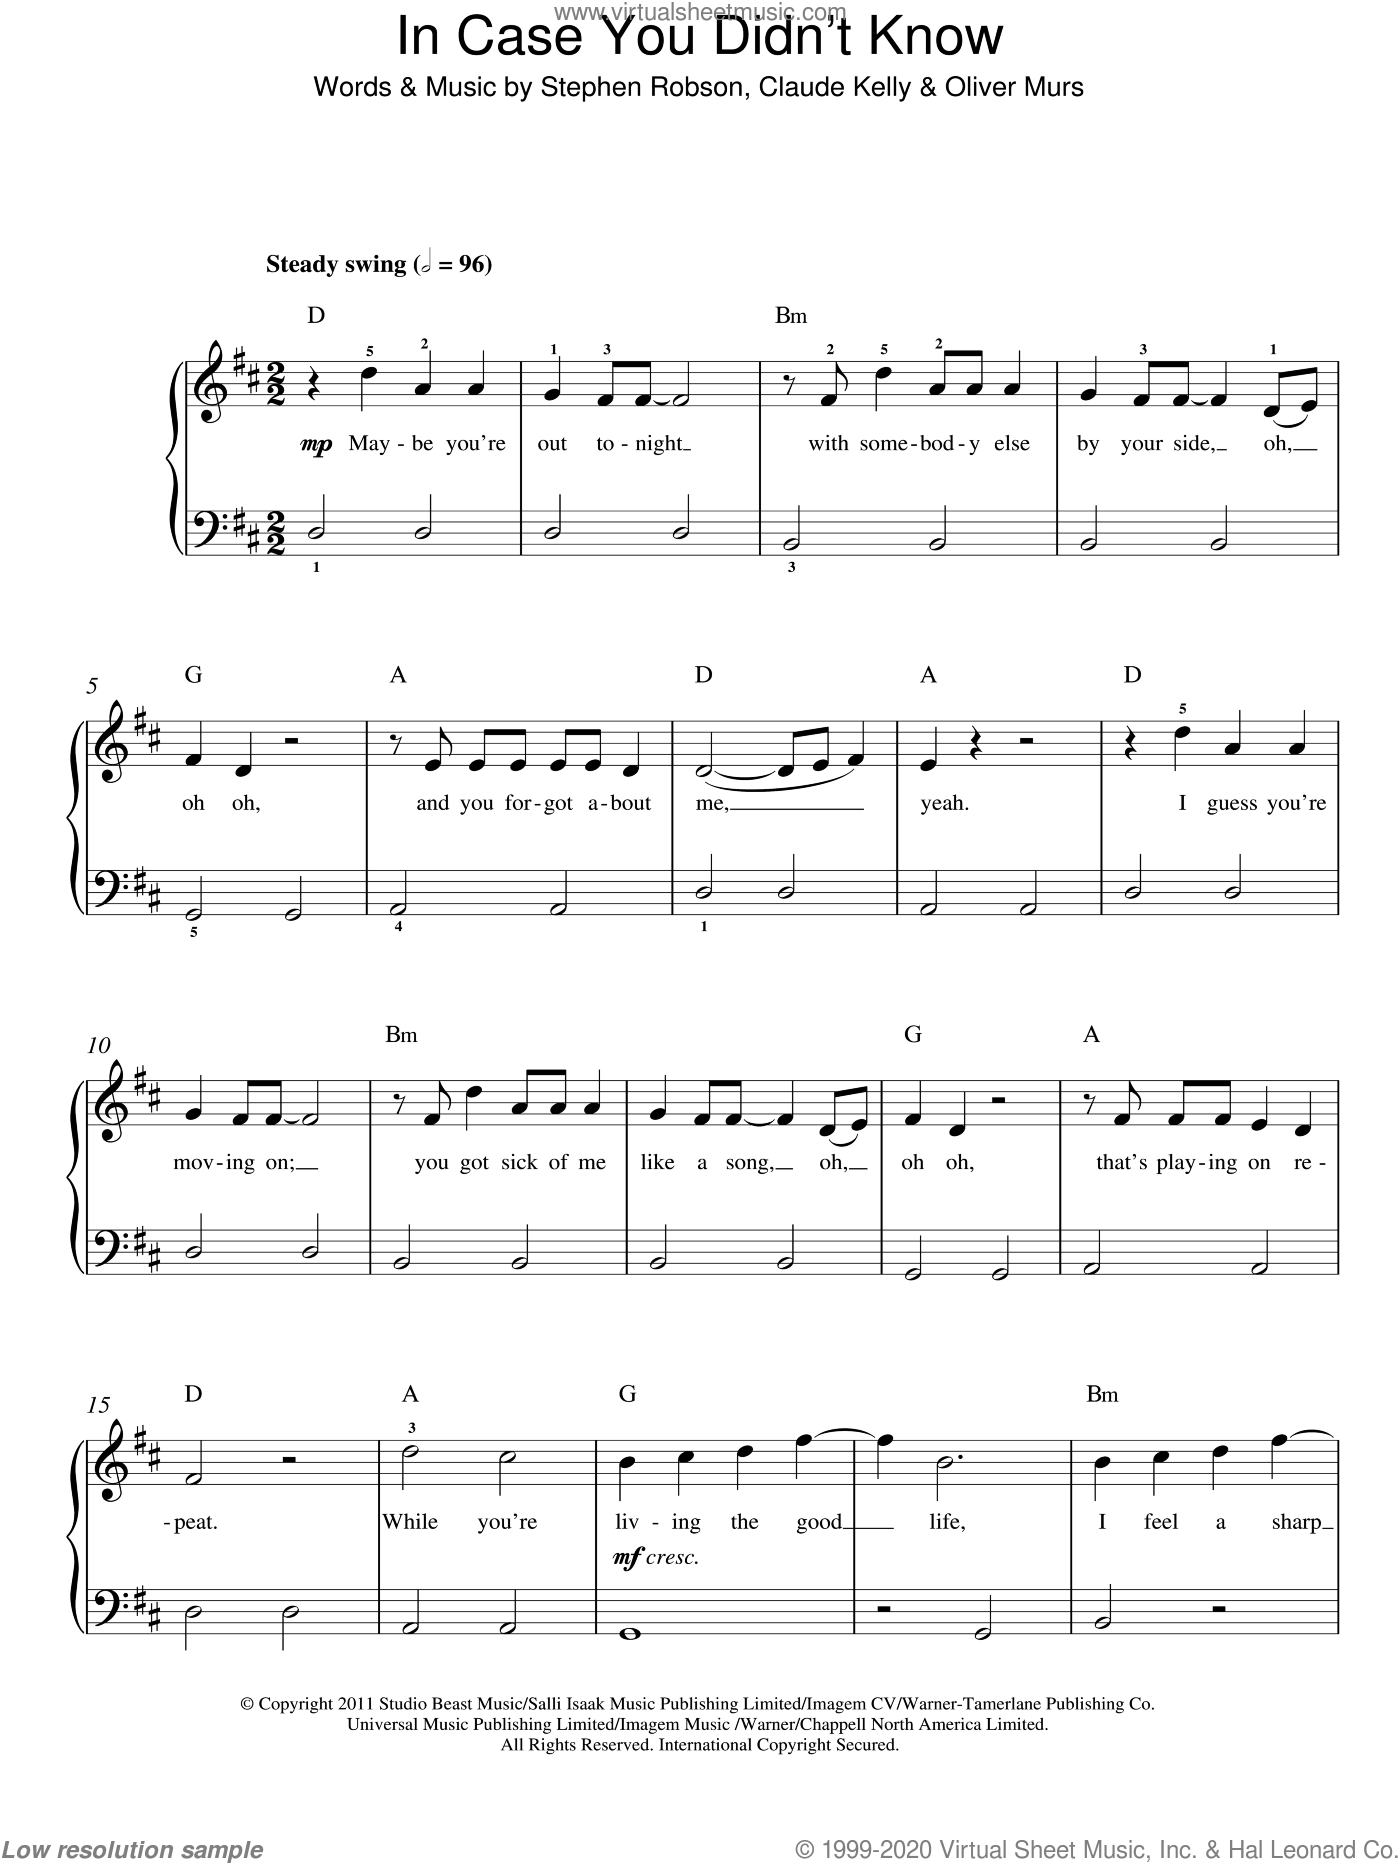 In Case You Didn't Know sheet music for piano solo by Steve Robson